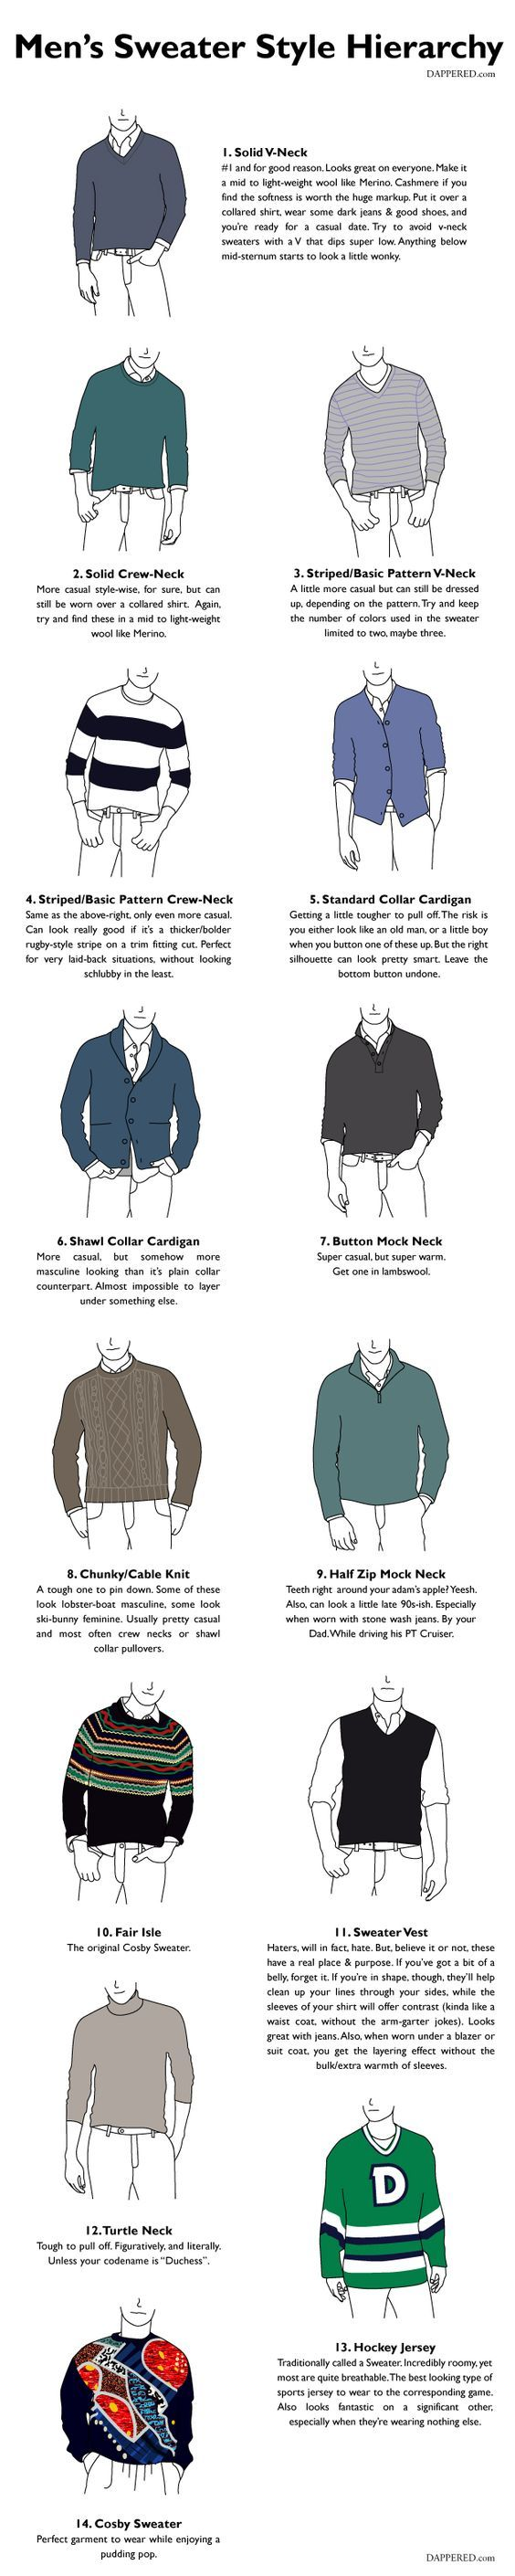 The Men's Sweater Style Hierarchy (via @Dappered):